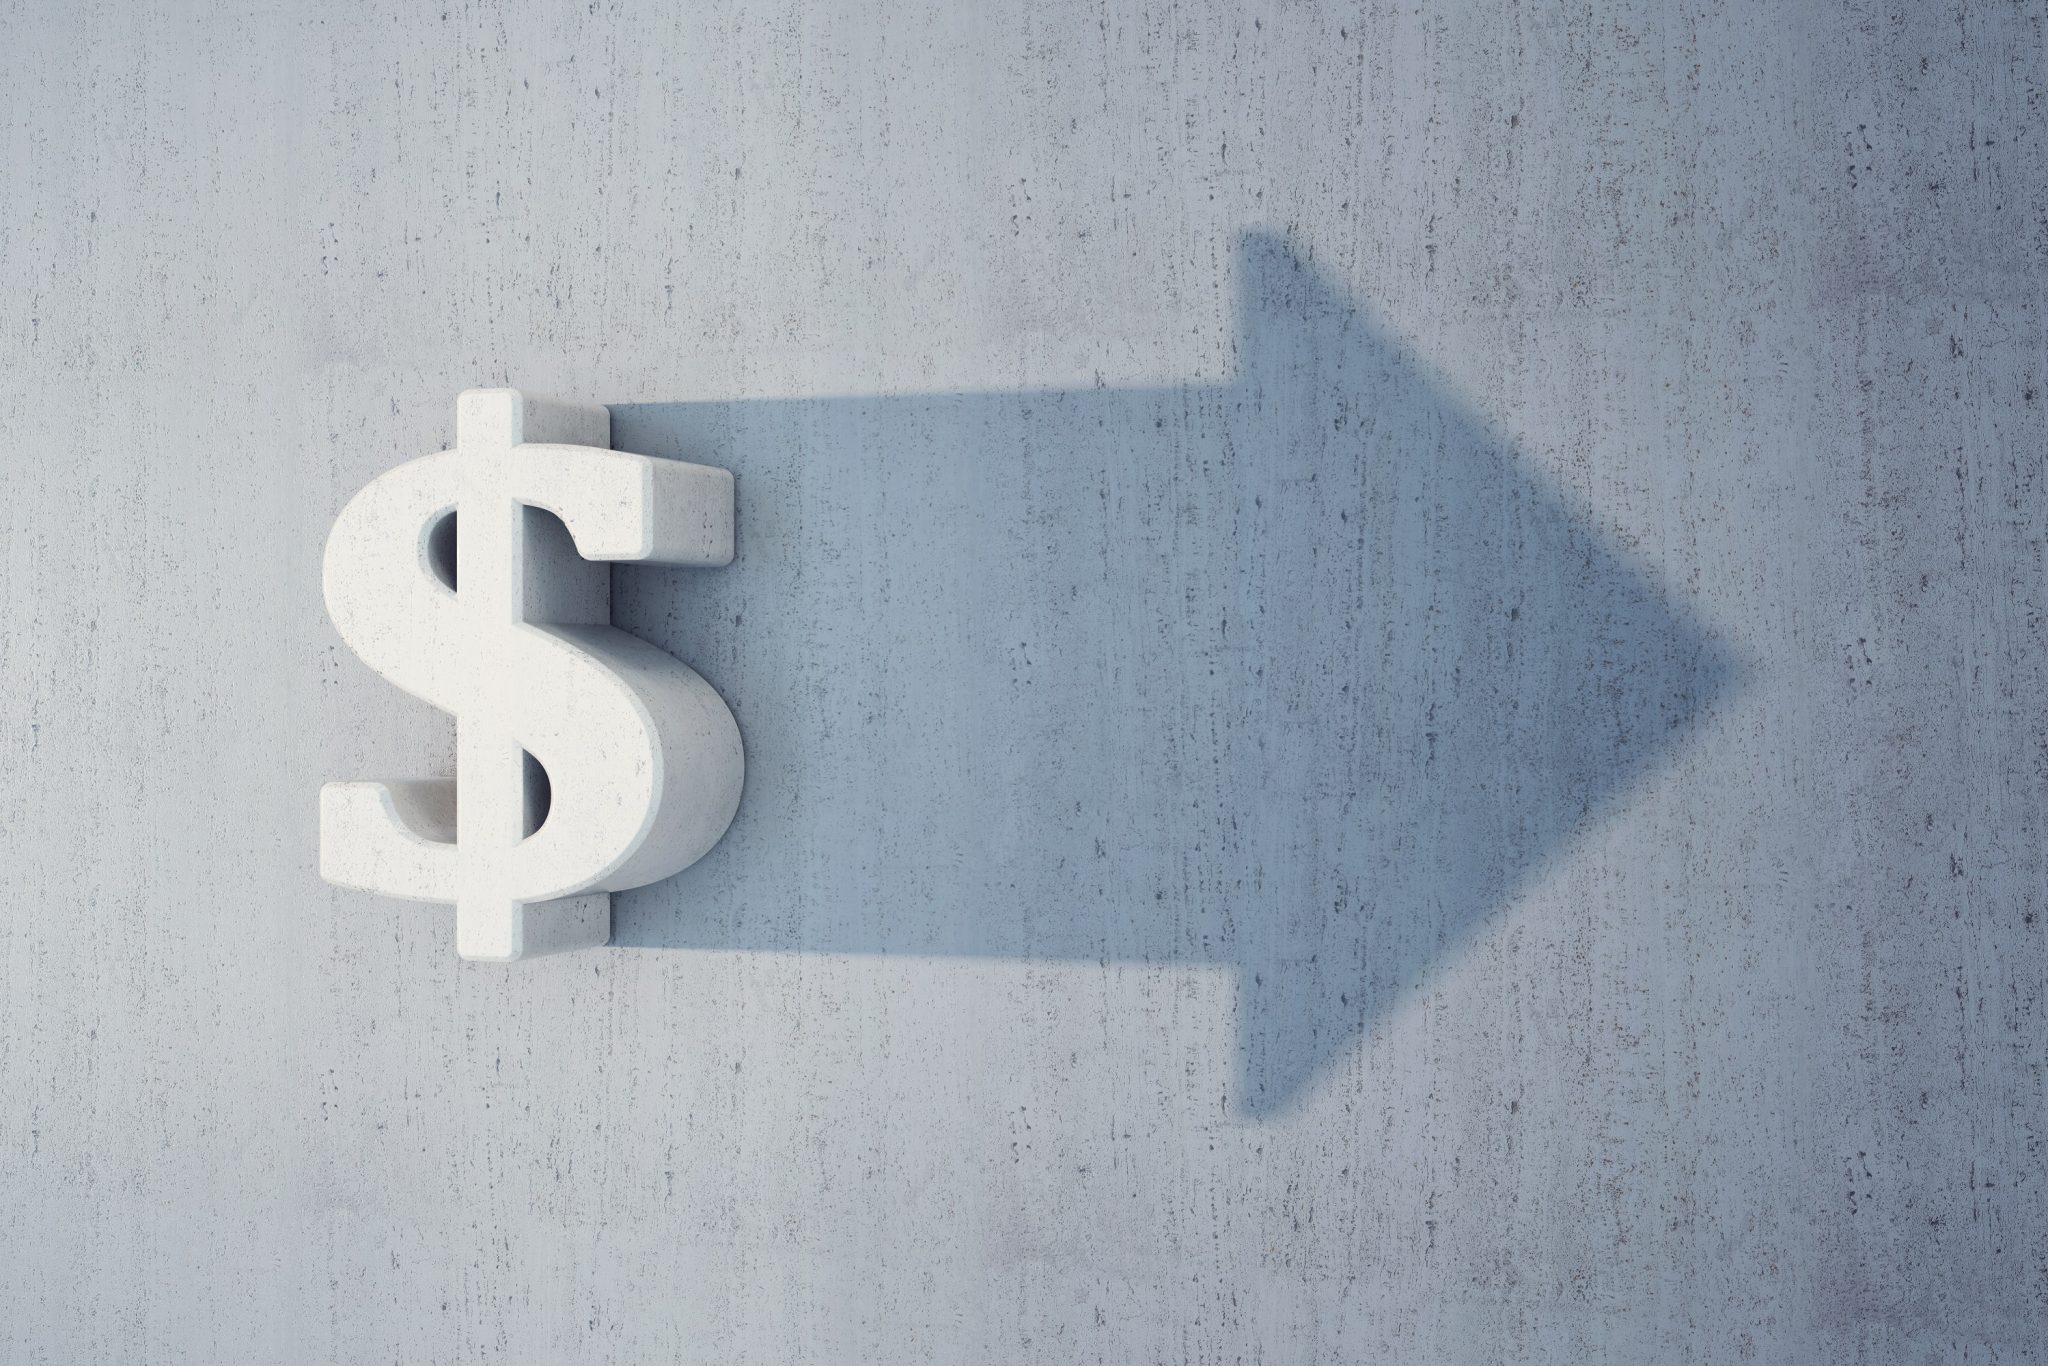 dollar sign with arrow to depict transferring or moving money